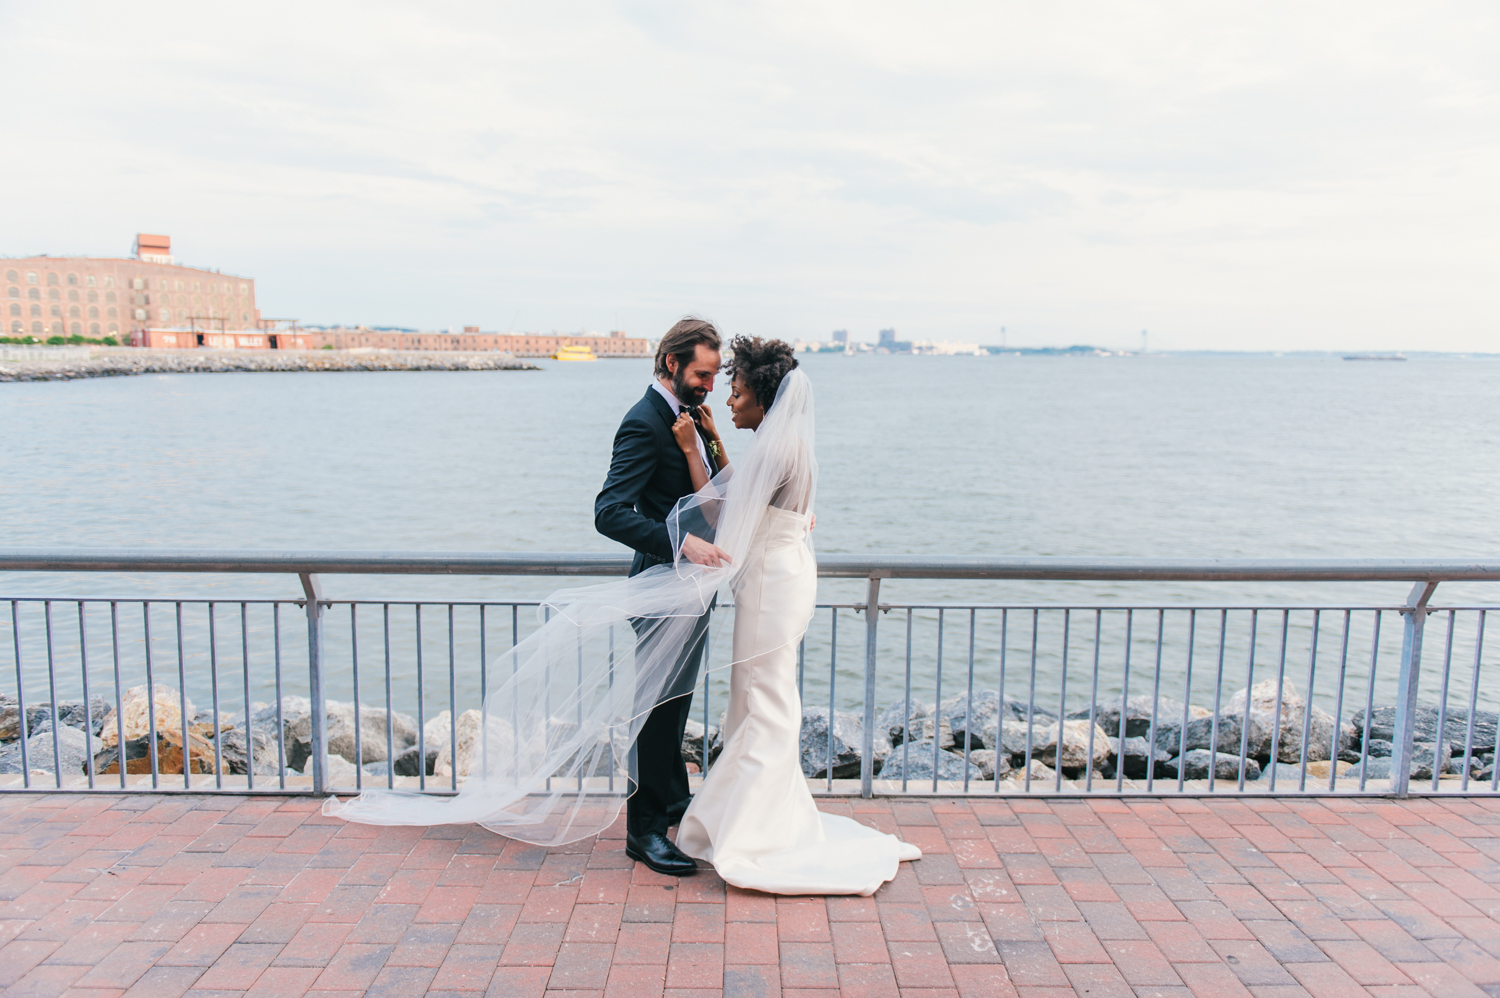 LibertyWarehouse.Brooklyn.RedHook.Wedding25.jpg